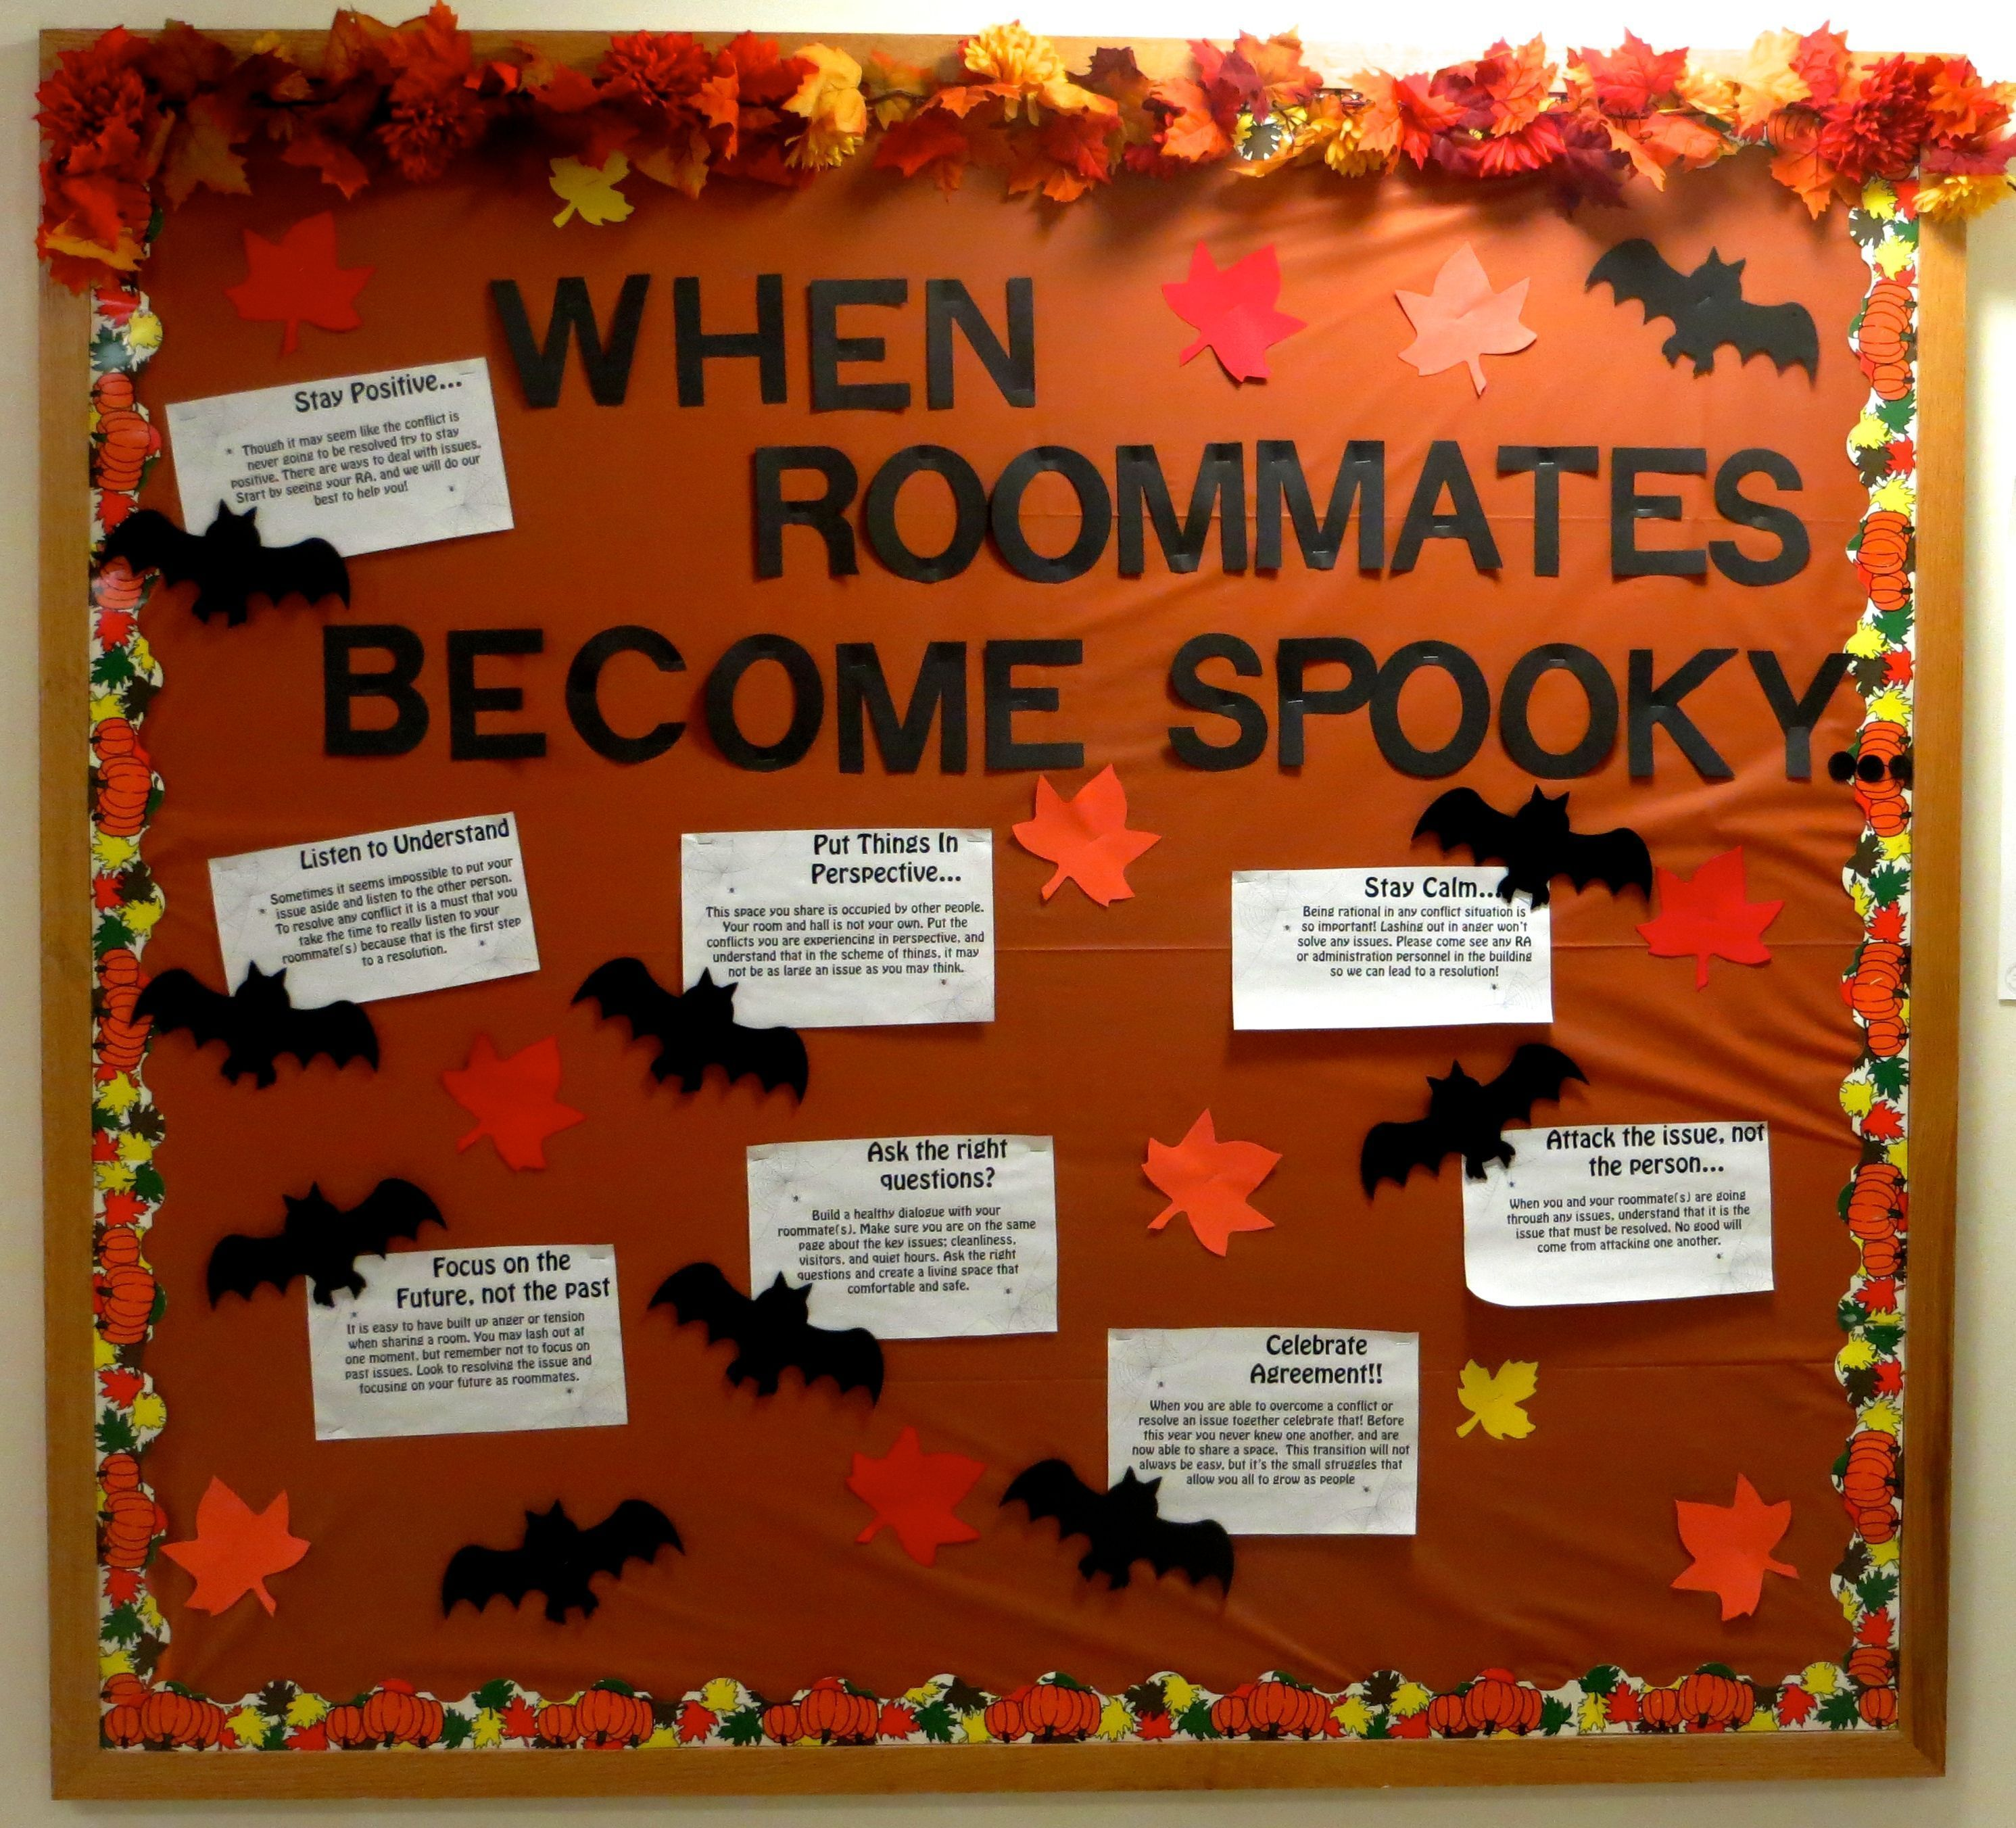 Resident assistant bulletin board for October. Halloween theme: When Roommates Become Spooky. Tips on how to deal with roommate conflict. #halloweenbulletinboards Resident assistant bulletin board for October. Halloween theme: When Roommates Become Spooky. Tips on how to deal with roommate conflict. #halloweenbulletinboards Resident assistant bulletin board for October. Halloween theme: When Roommates Become Spooky. Tips on how to deal with roommate conflict. #halloweenbulletinboards Resident #octoberbulletinboards